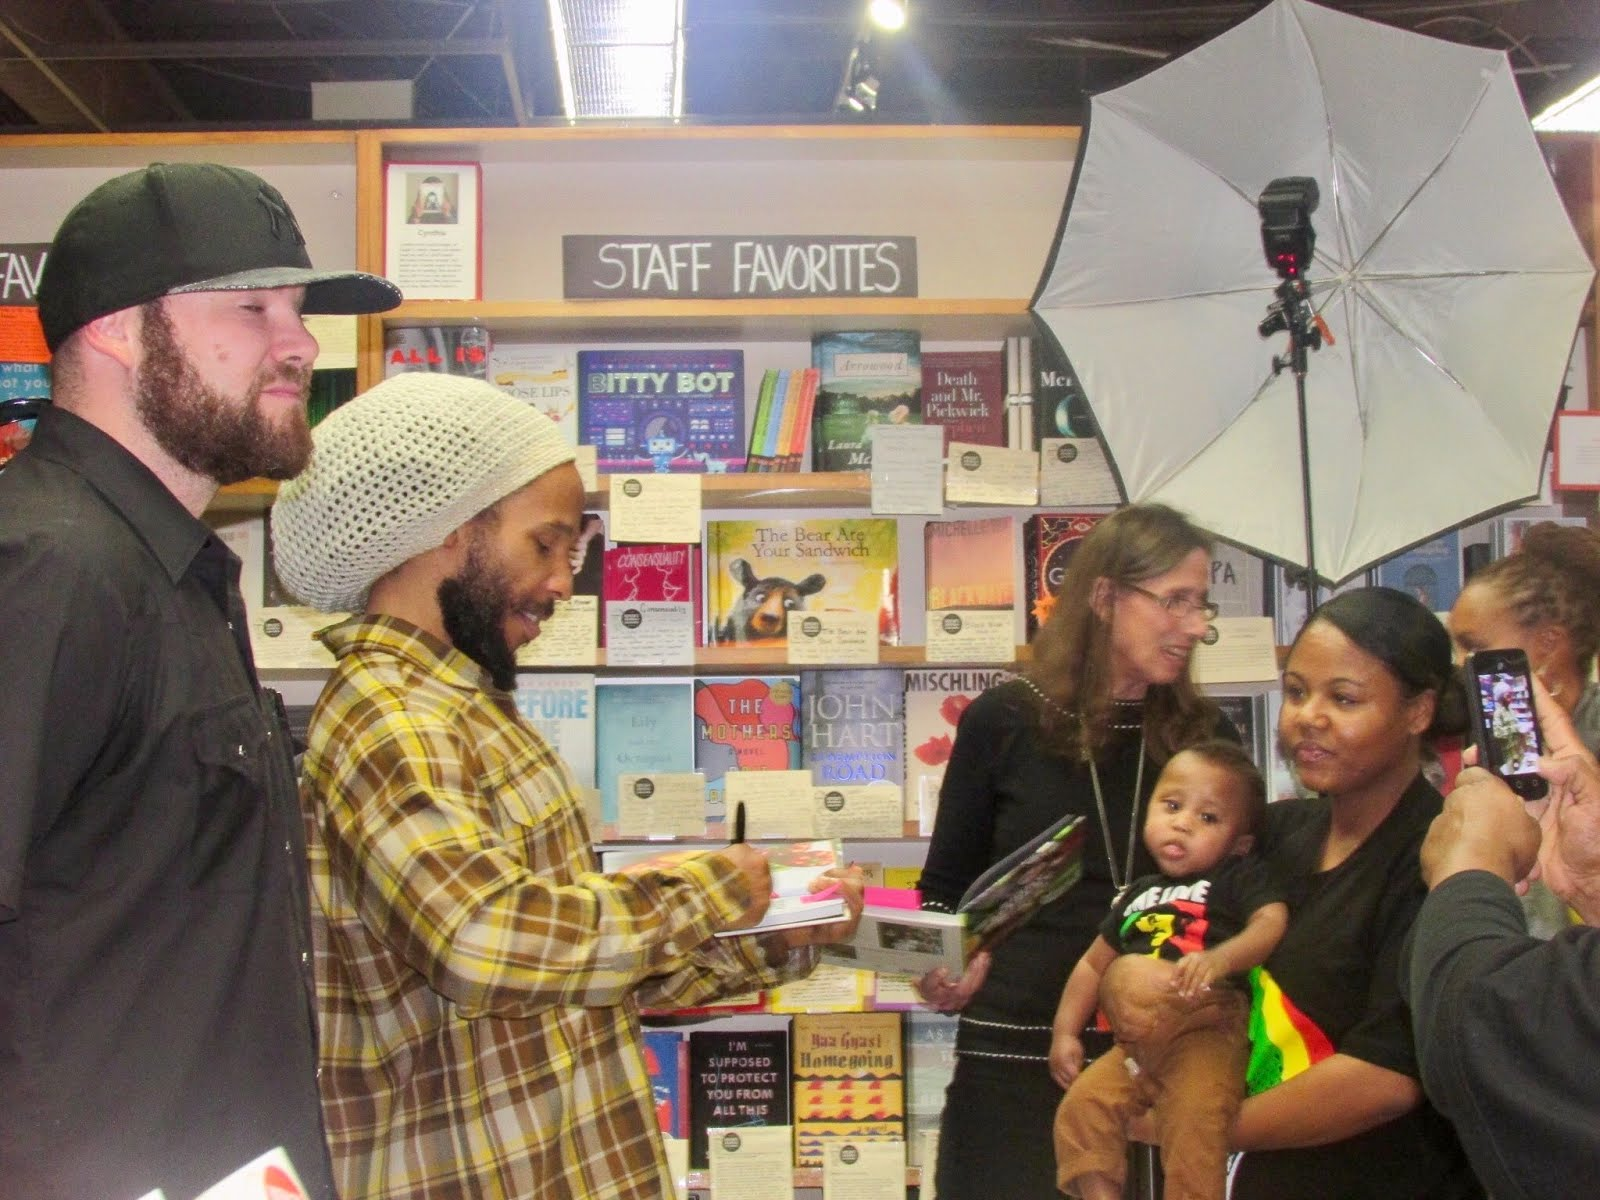 In the Kitchen with Ziggy Marley: Seven-Time Grammy Winner Launches Family Cook Book in Menlo Park,